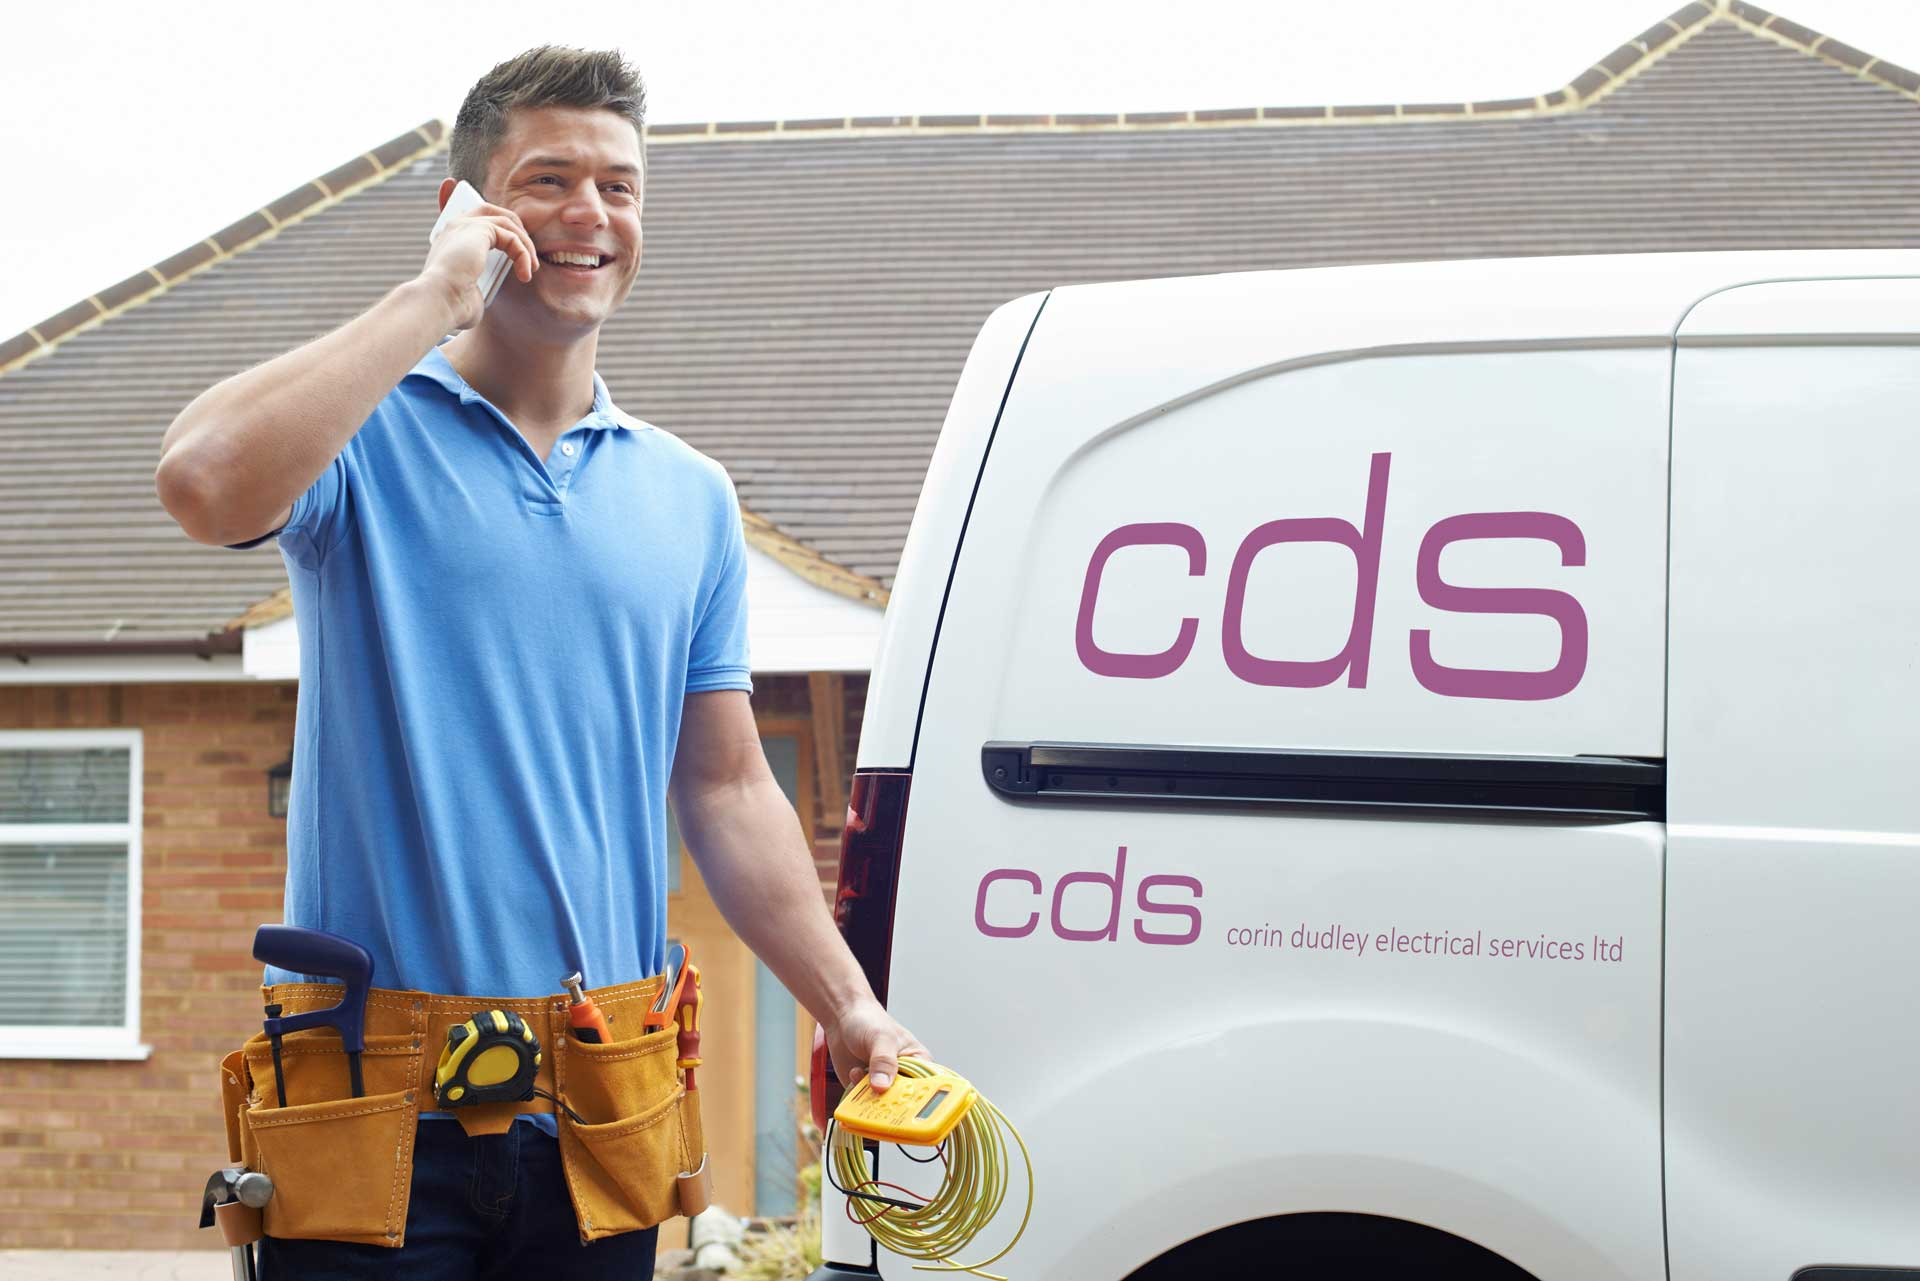 A CDS Electrical engineer talking happily on his phone by his van